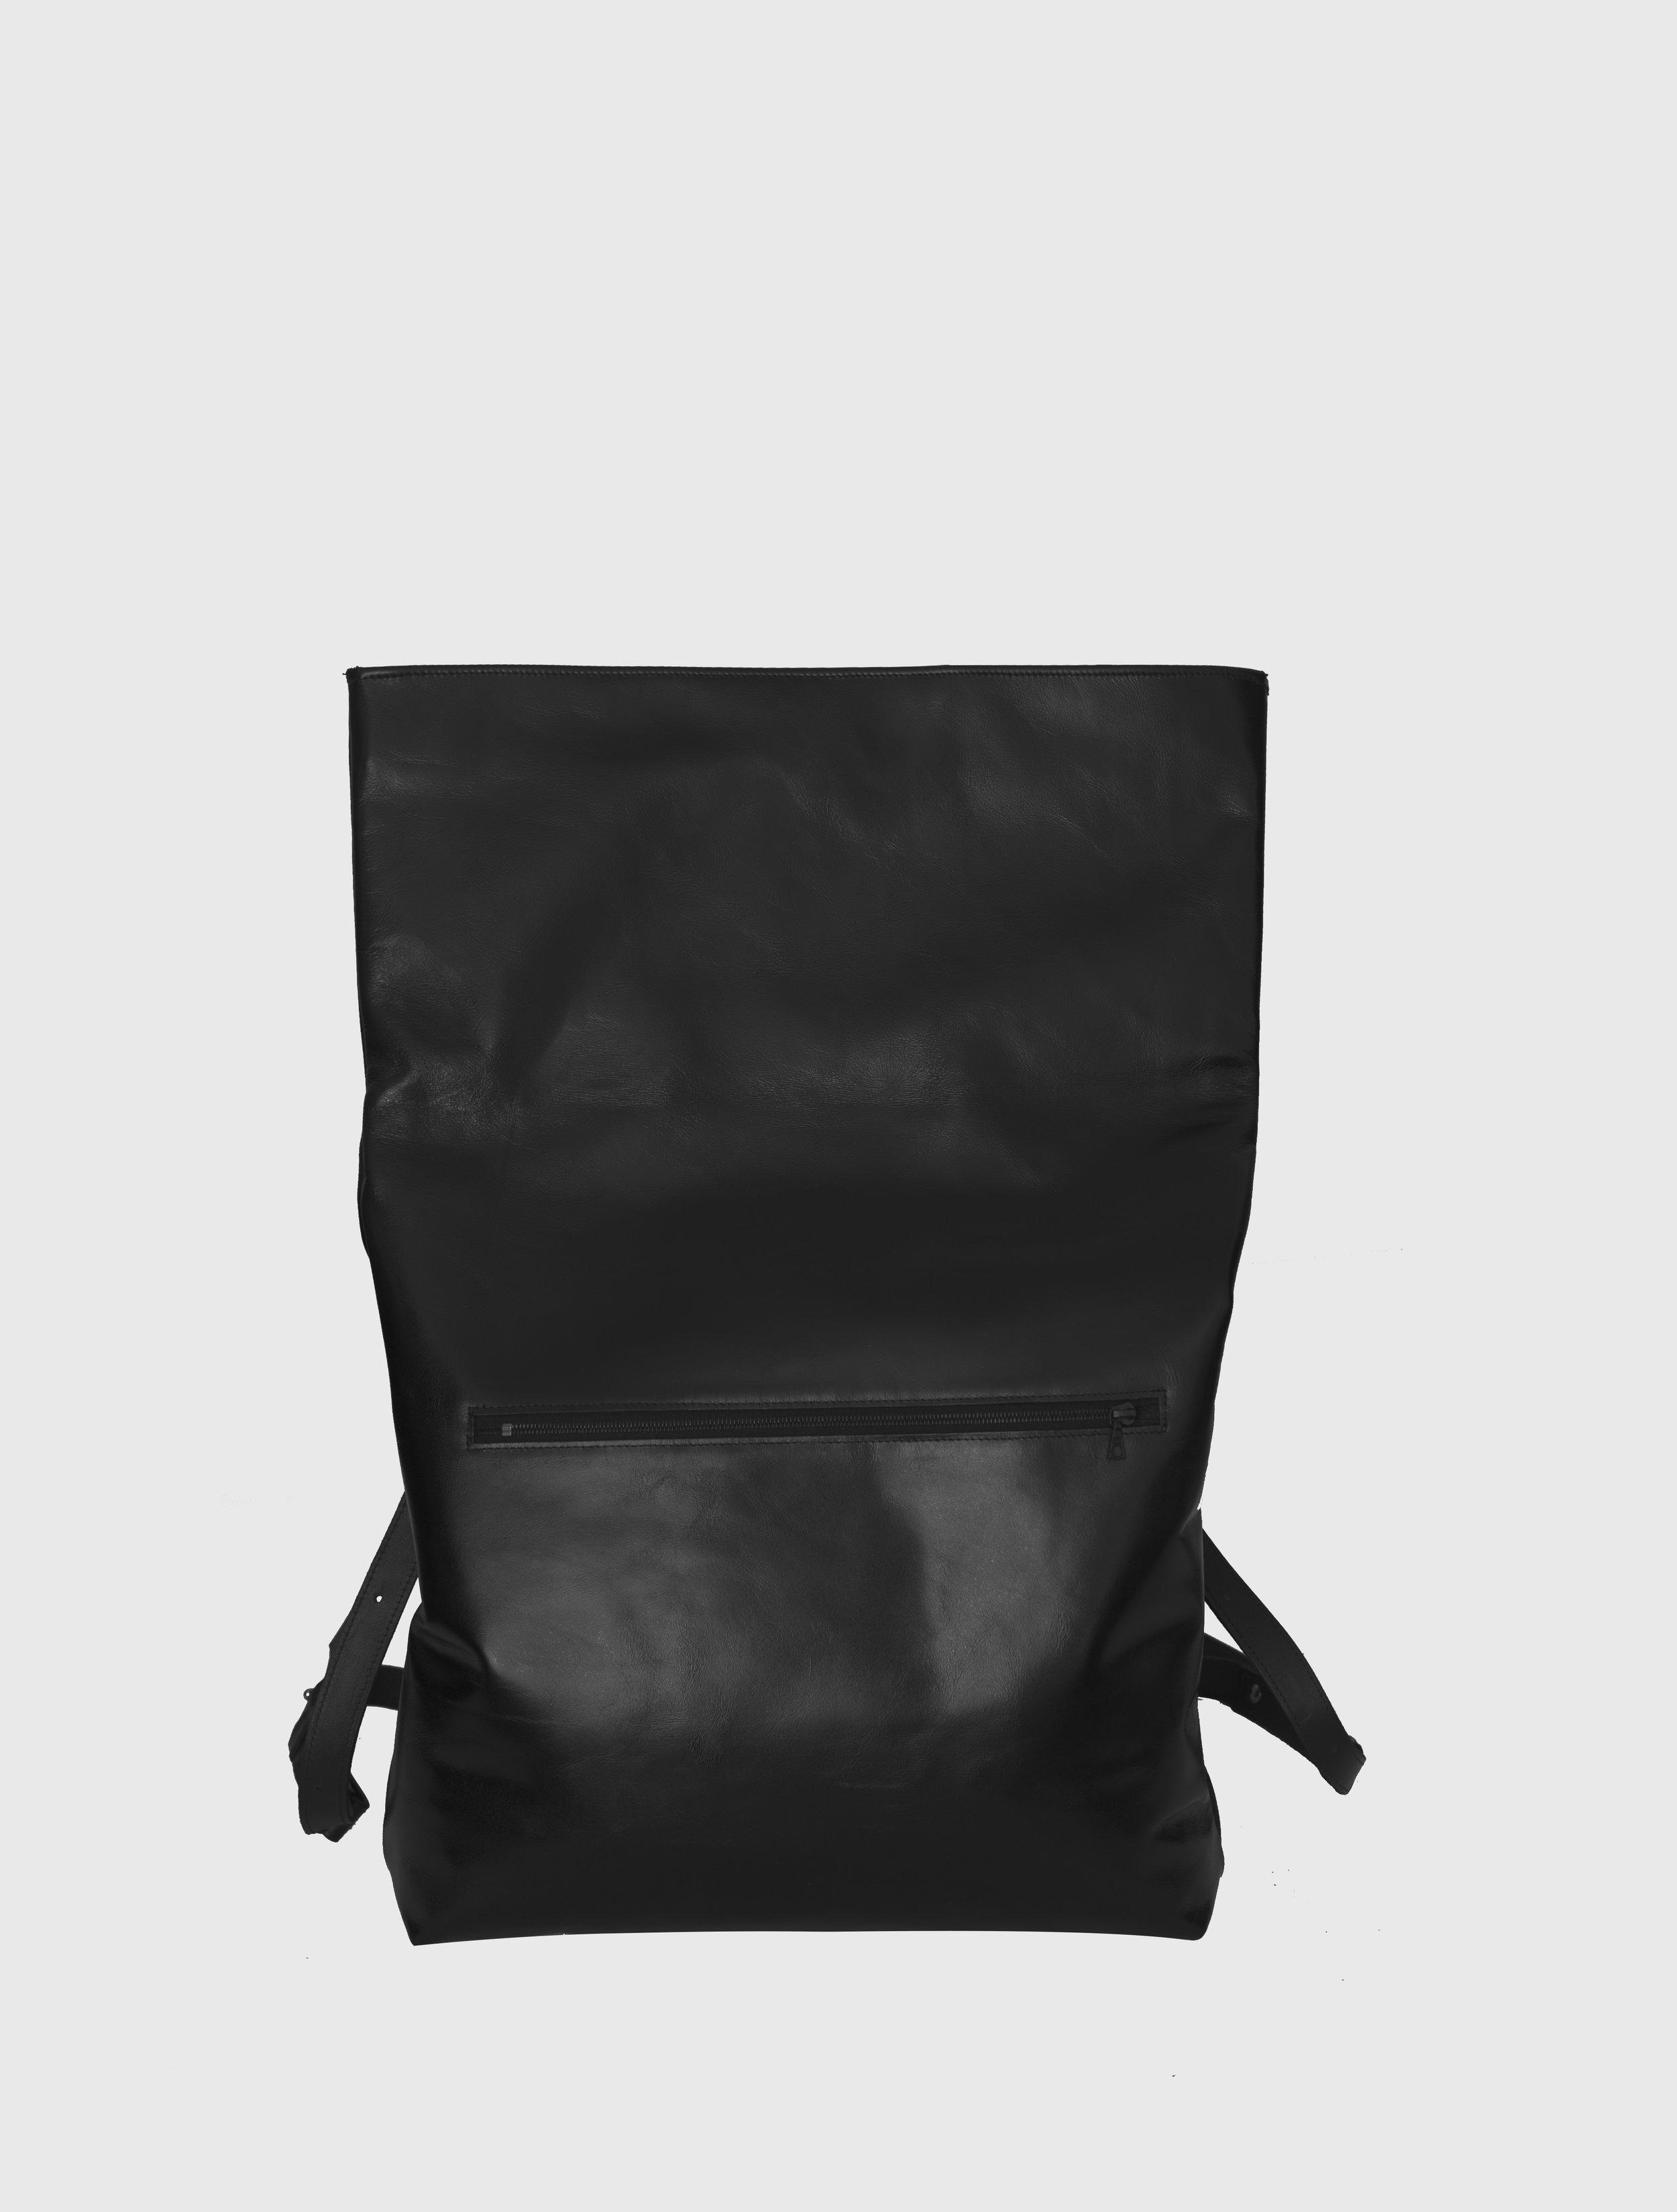 2015-16 BACKPACK -BLACK DETAIL.jpg